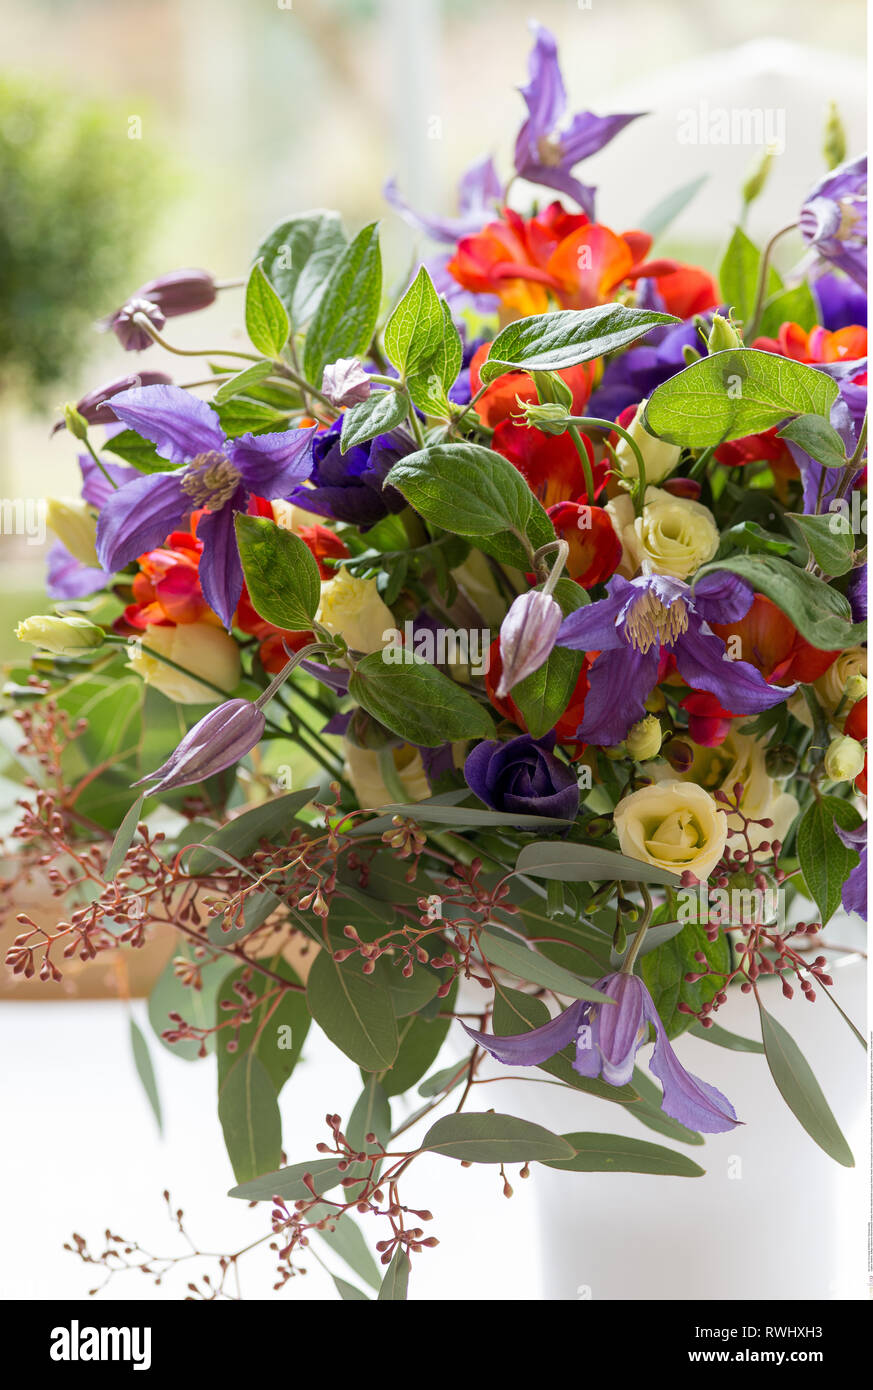 botany, filmier naturally flower bouquet, Caution! For Greetingcard-Use / Postcard-Use In German Speaking Countries Certain Restrictions May Apply - Stock Image